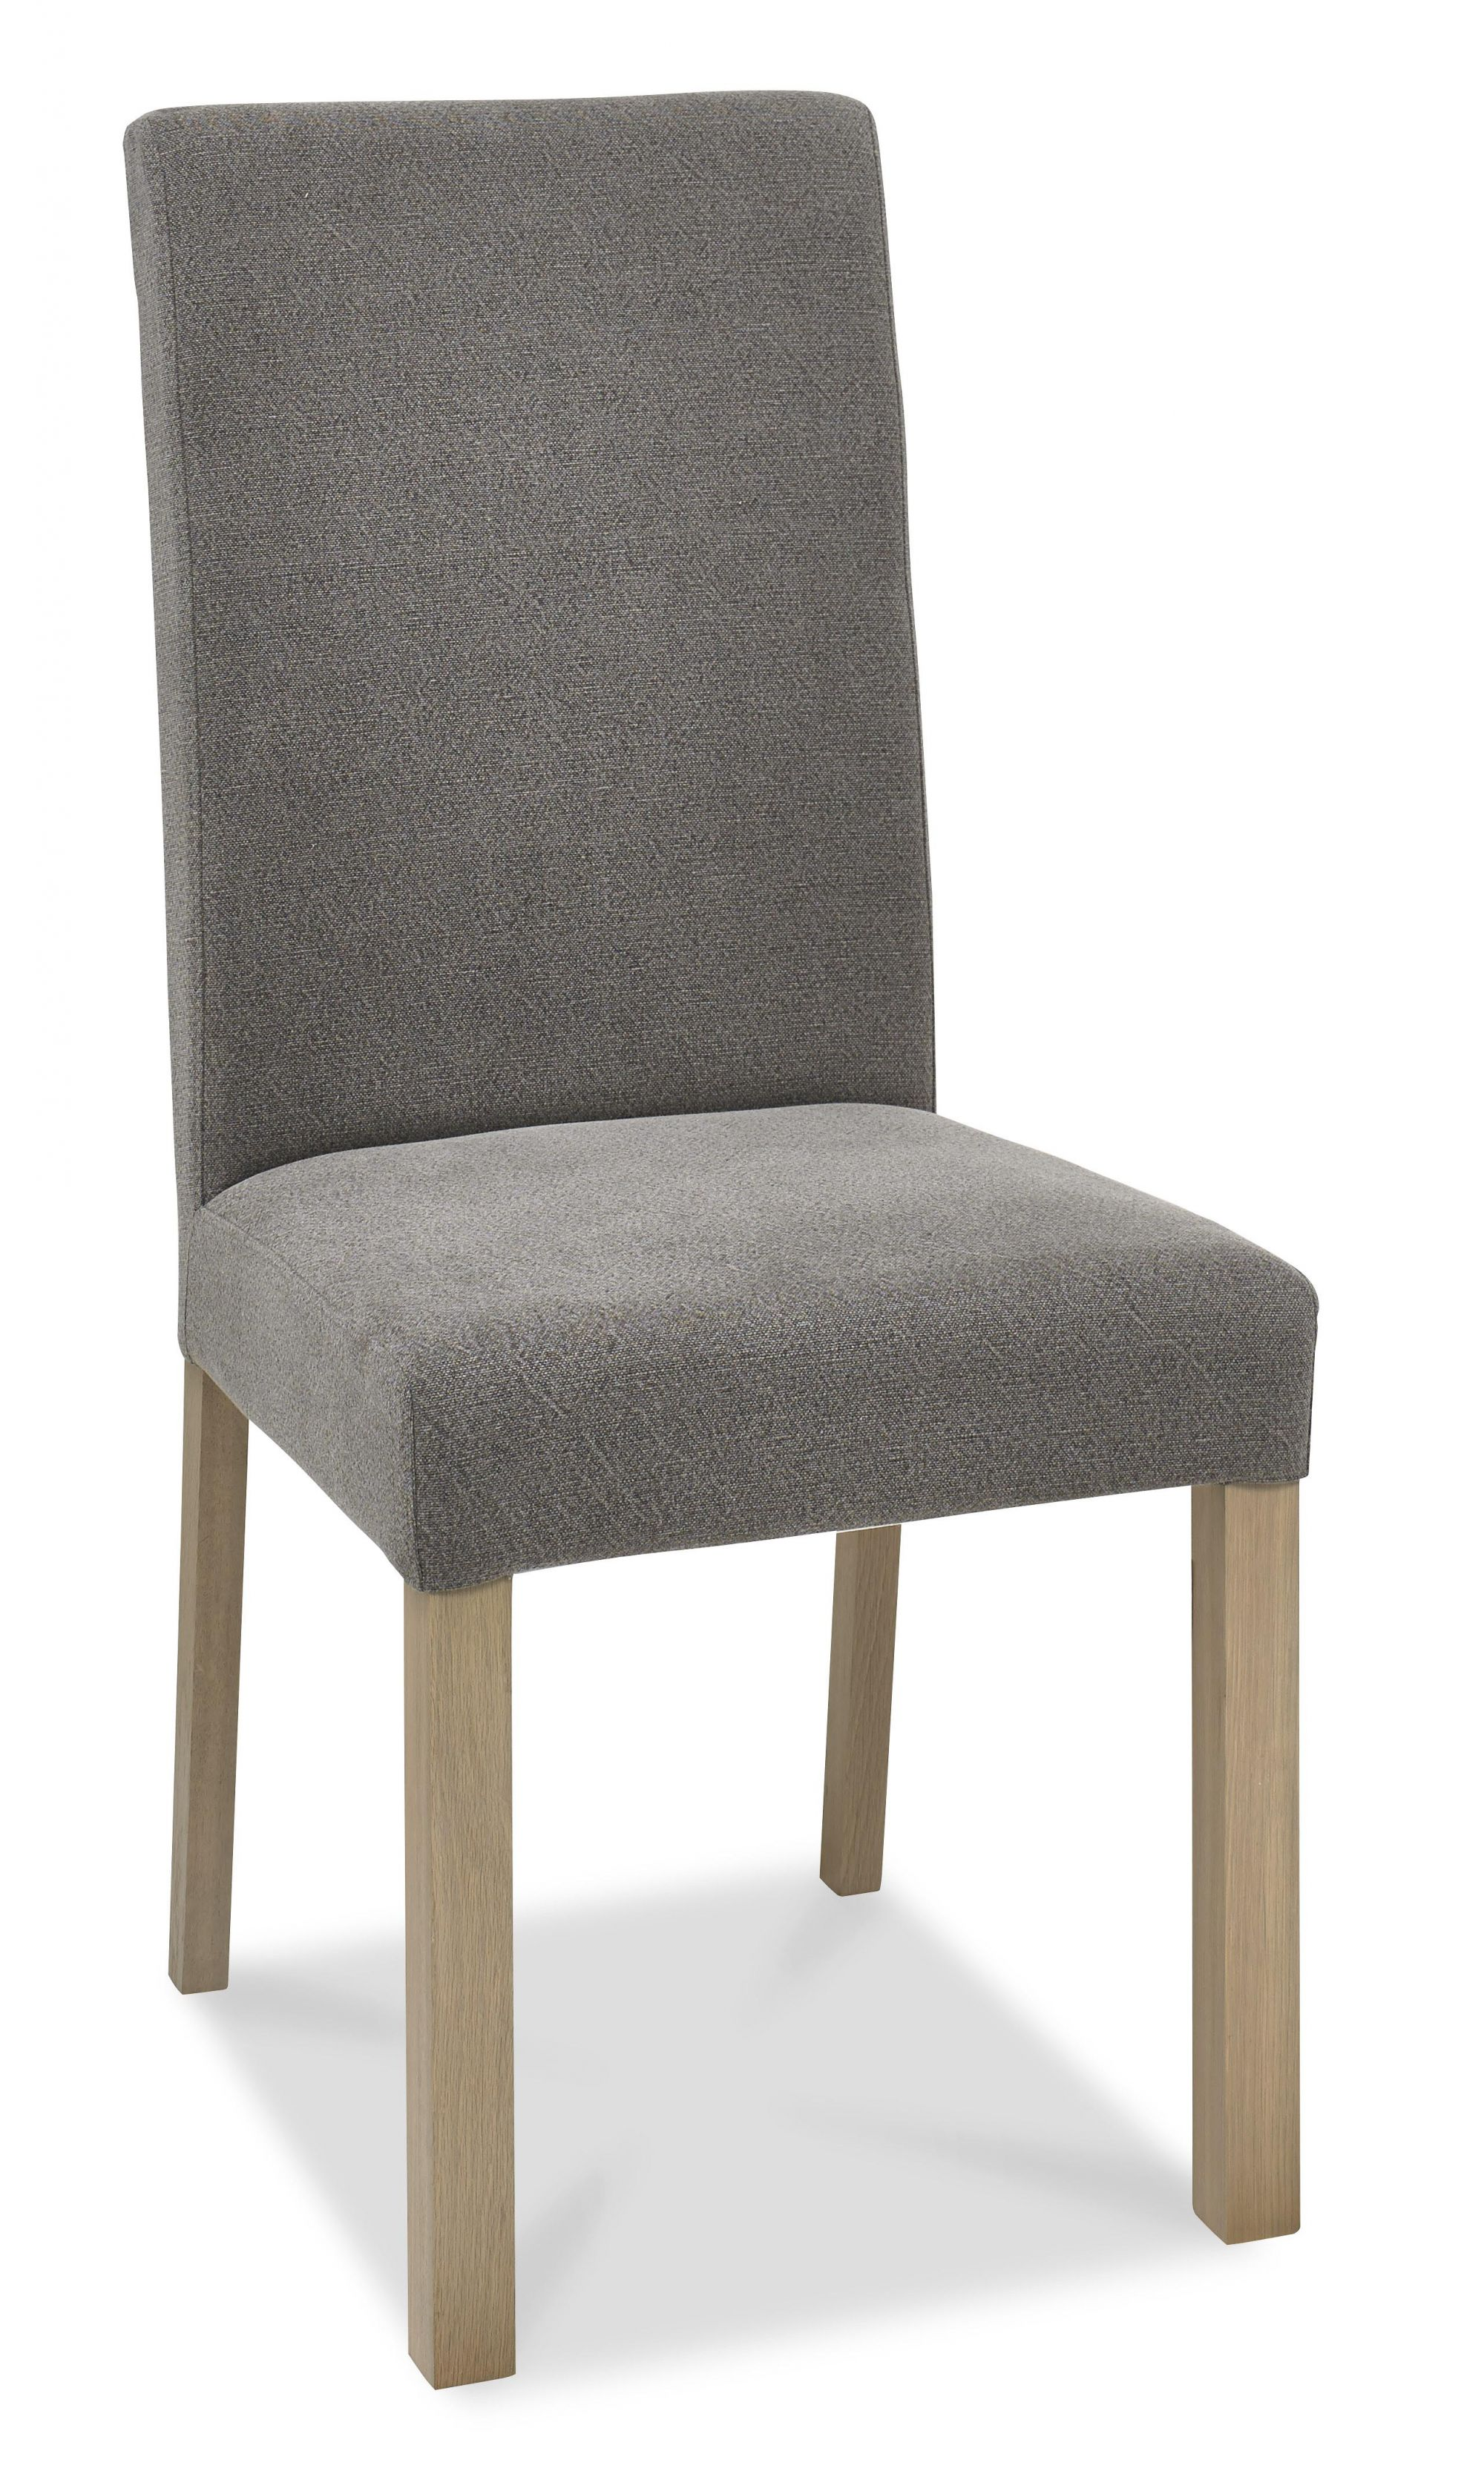 https://www.firstfurniture.co.uk/pub/media/catalog/product/2/6/2640-09sq-sg-c1.jpg